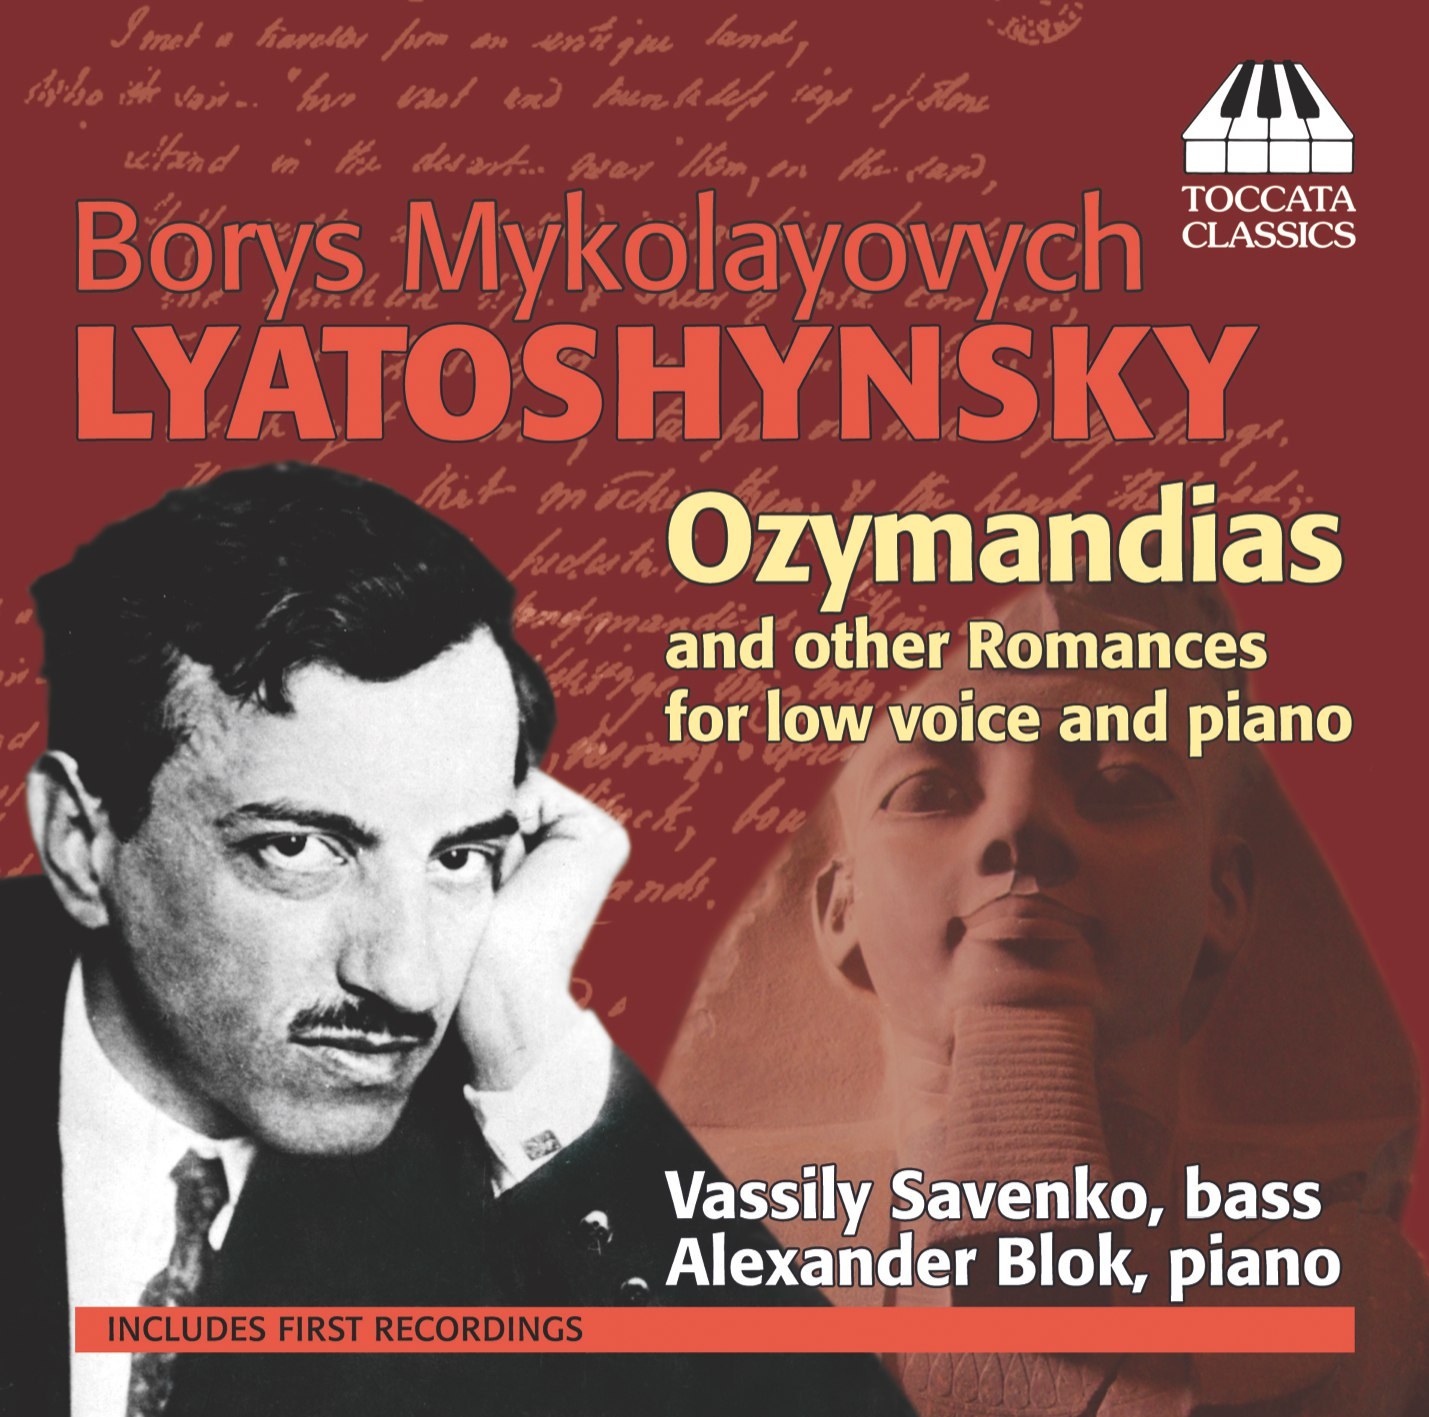 Boris Mykolayovych Lyatoshynsky: Romances for Low Voice and Piano